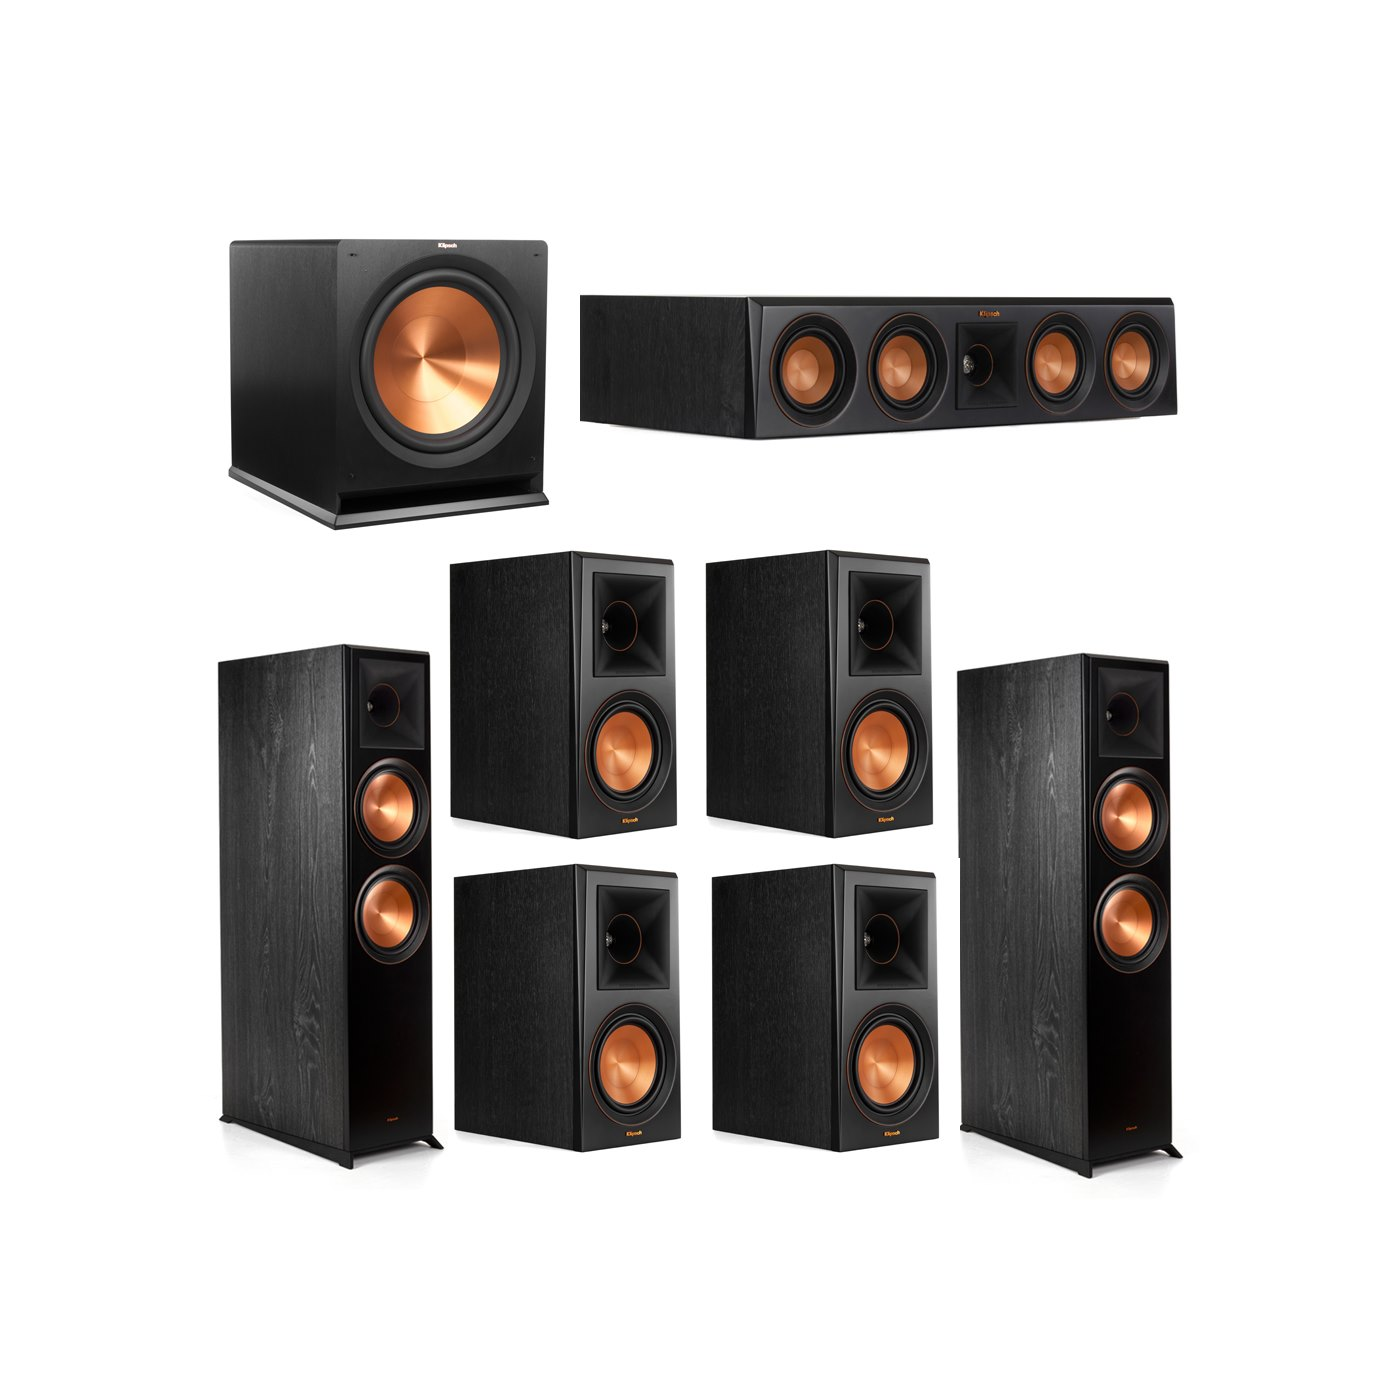 Klipsch 7.1.2 System - 2 RP-8060FA Dolby Atmos Speakers, 1 RP-404C, 4 RP-600M Speakers, 1 R-115SW